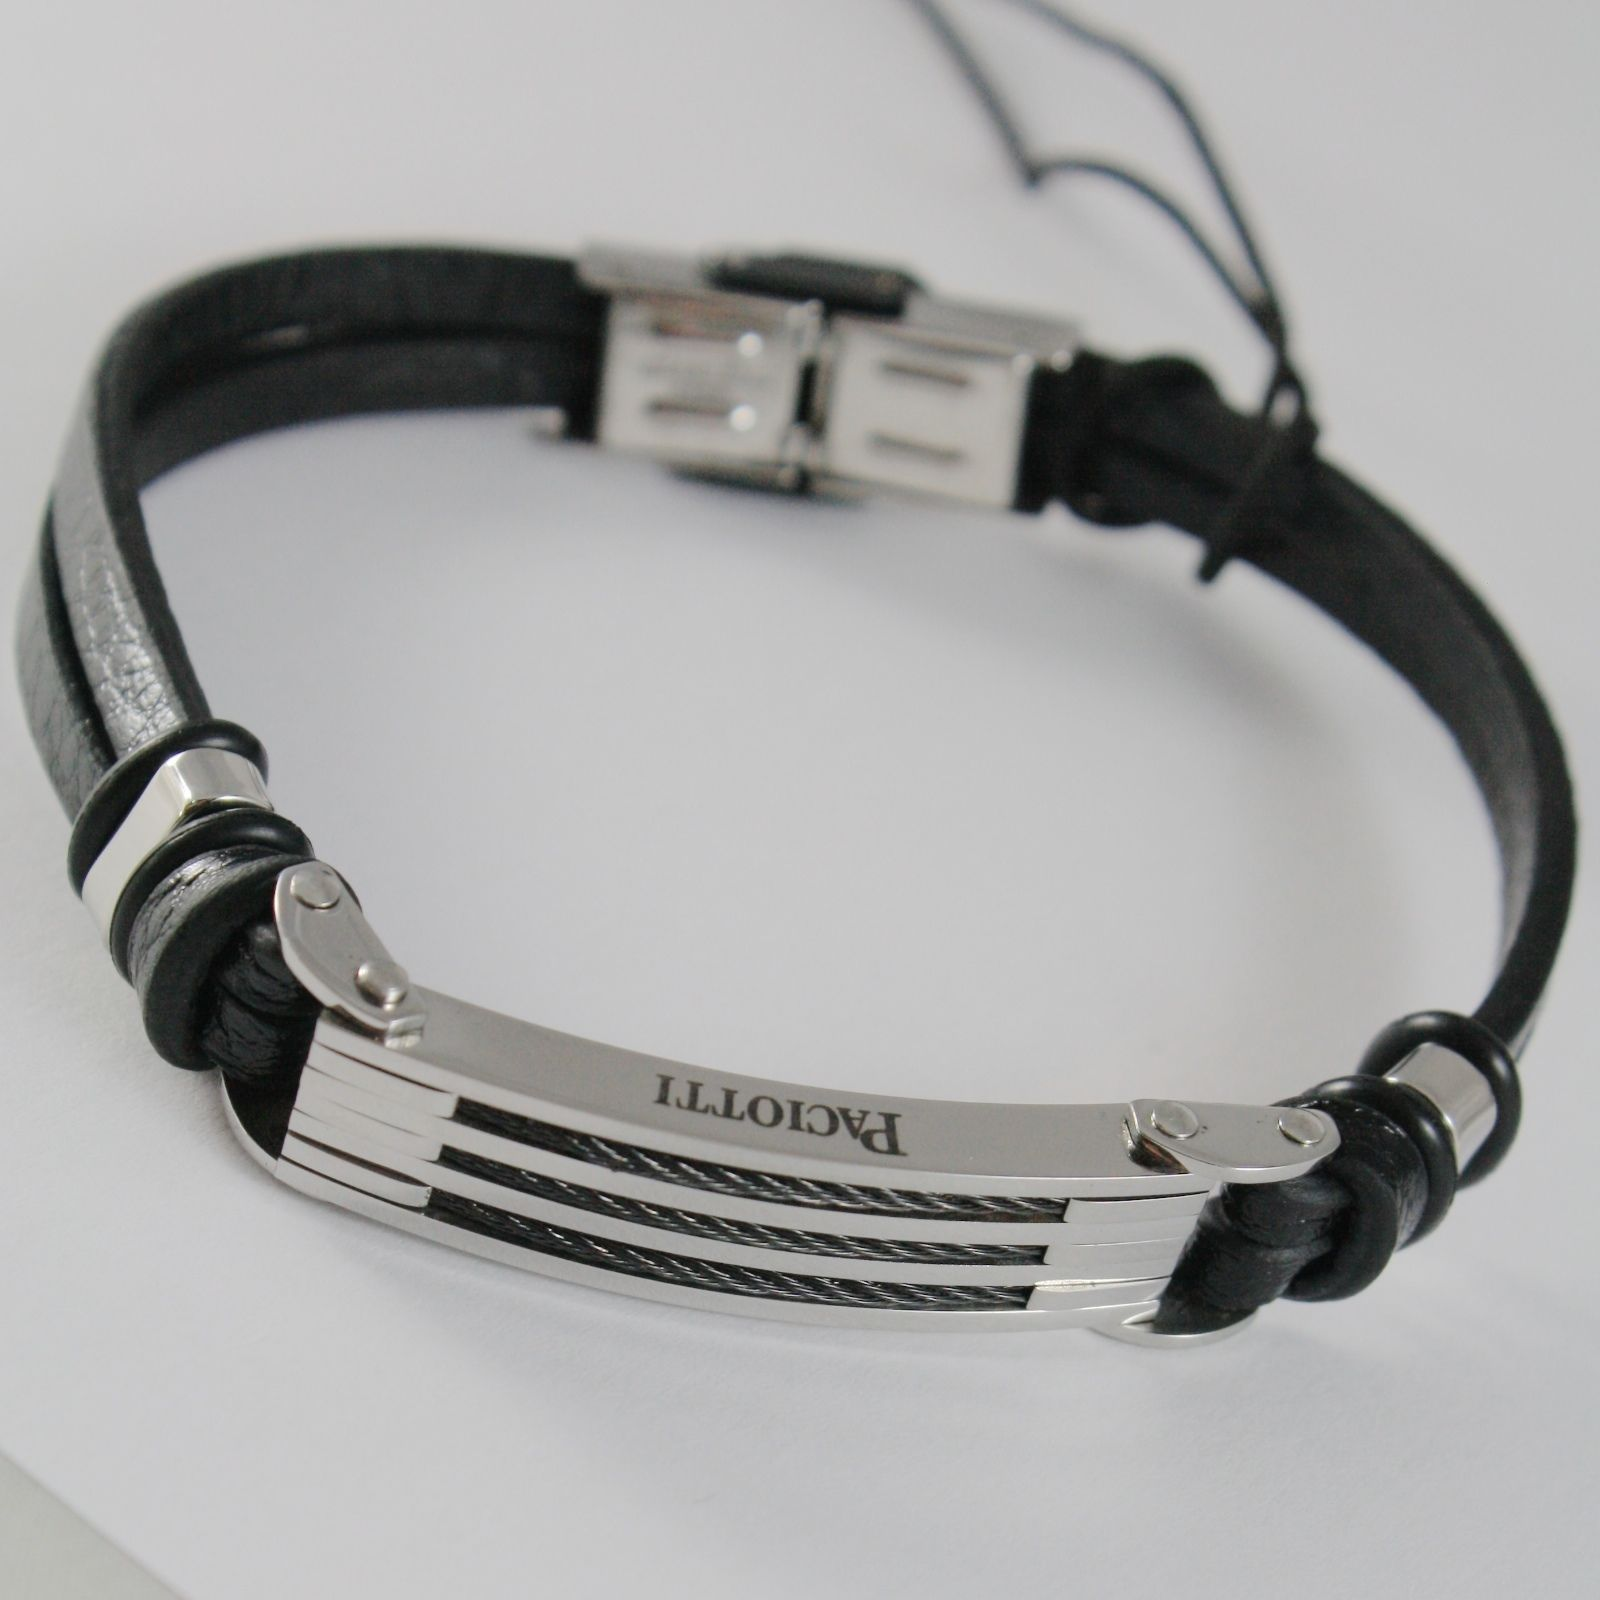 MEN'S BRACELET STEEL AND BLACK LEATHER CESARE PACIOTTI 4US ARTICLE 4UBR1533